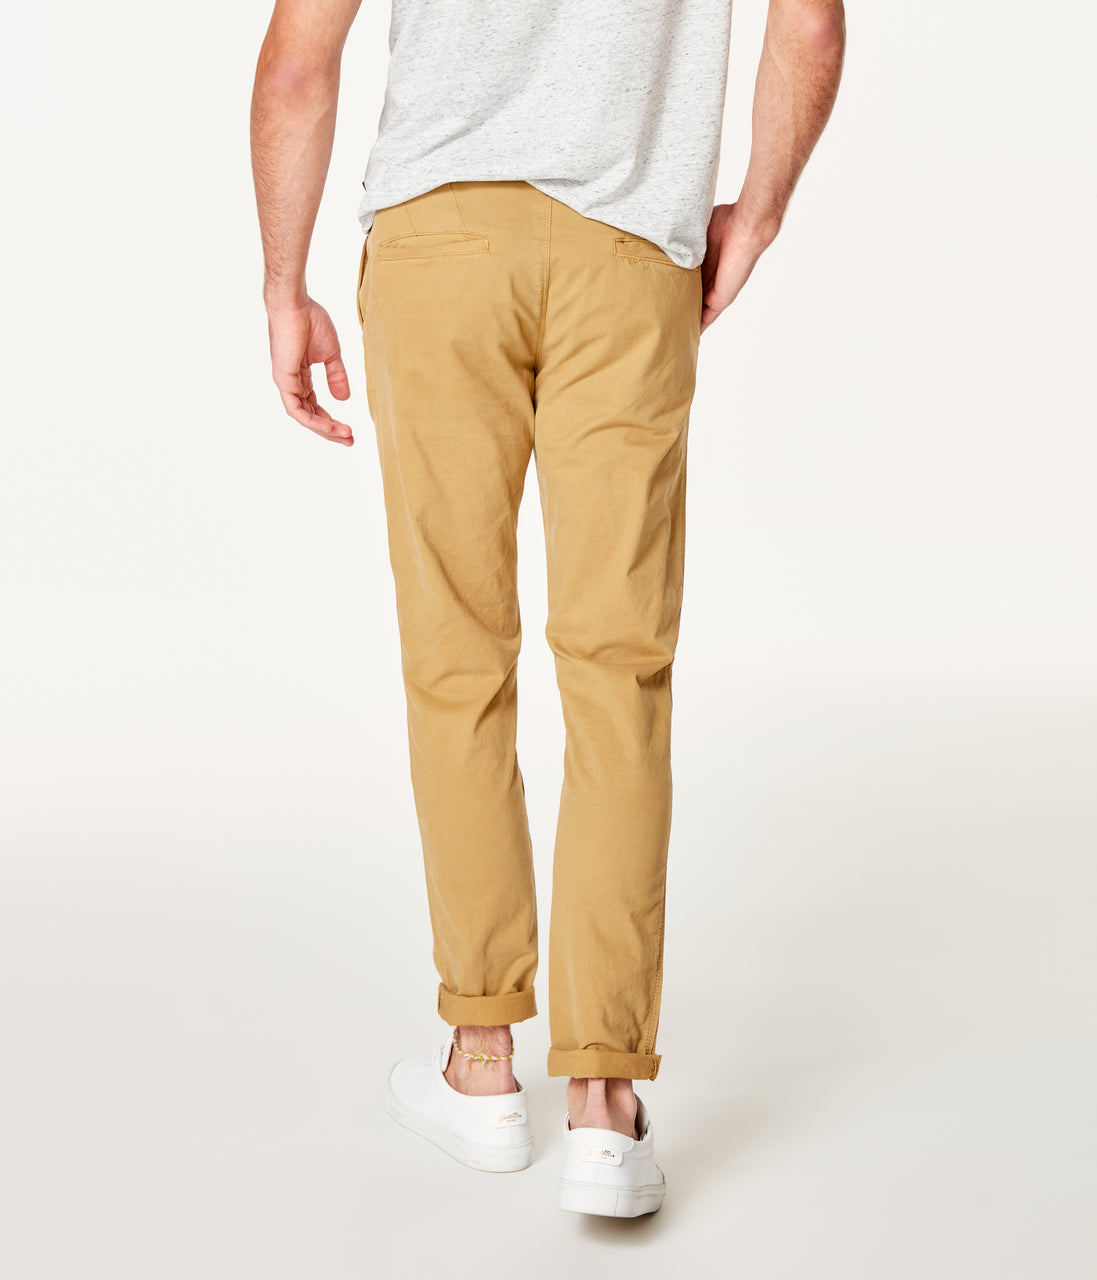 Pro Stretch Twill Star Chino - Khaki - Good Man Brand - Pro Stretch Twill Star Chino - Khaki